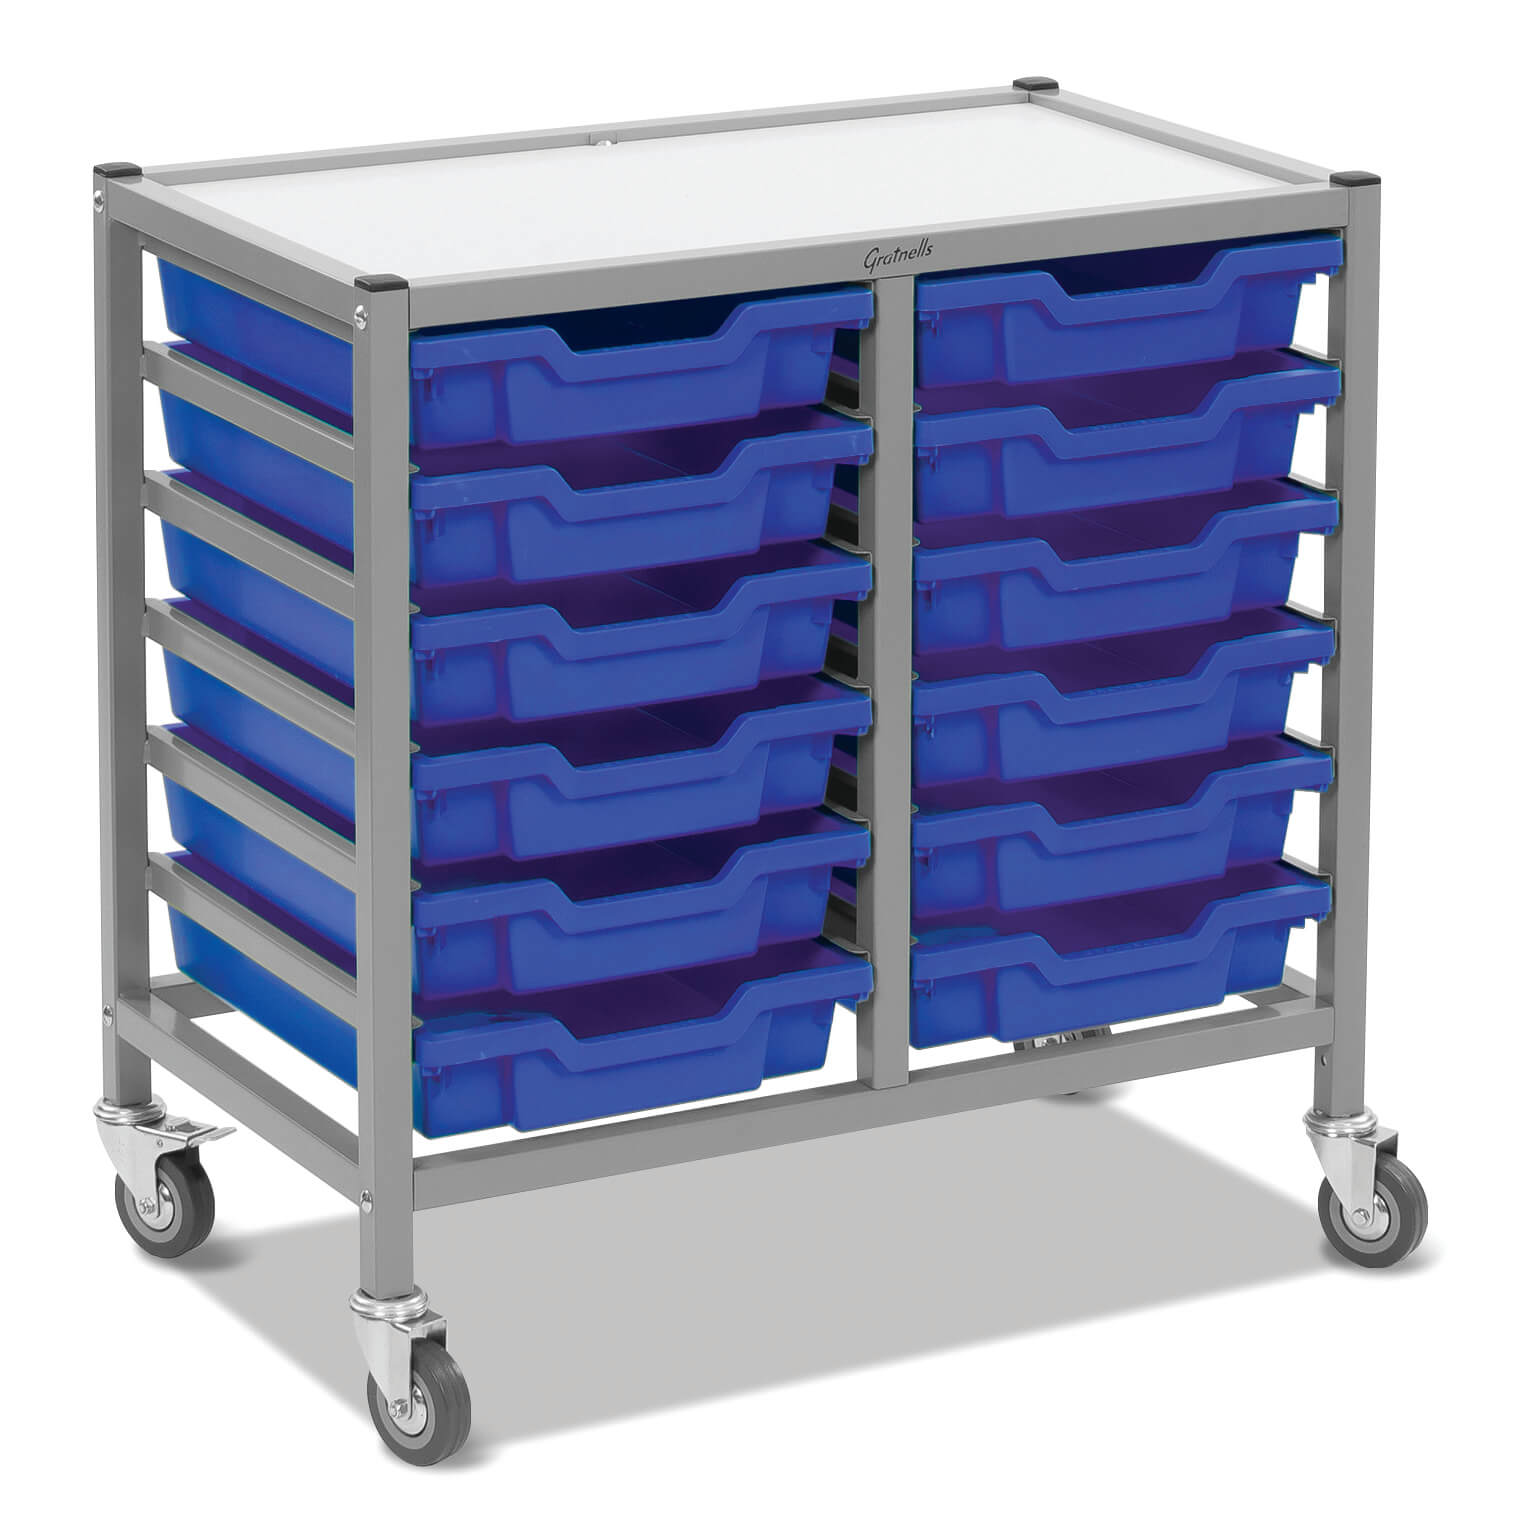 Gratnells Double Column Trolley Unit - 12 shallow trays